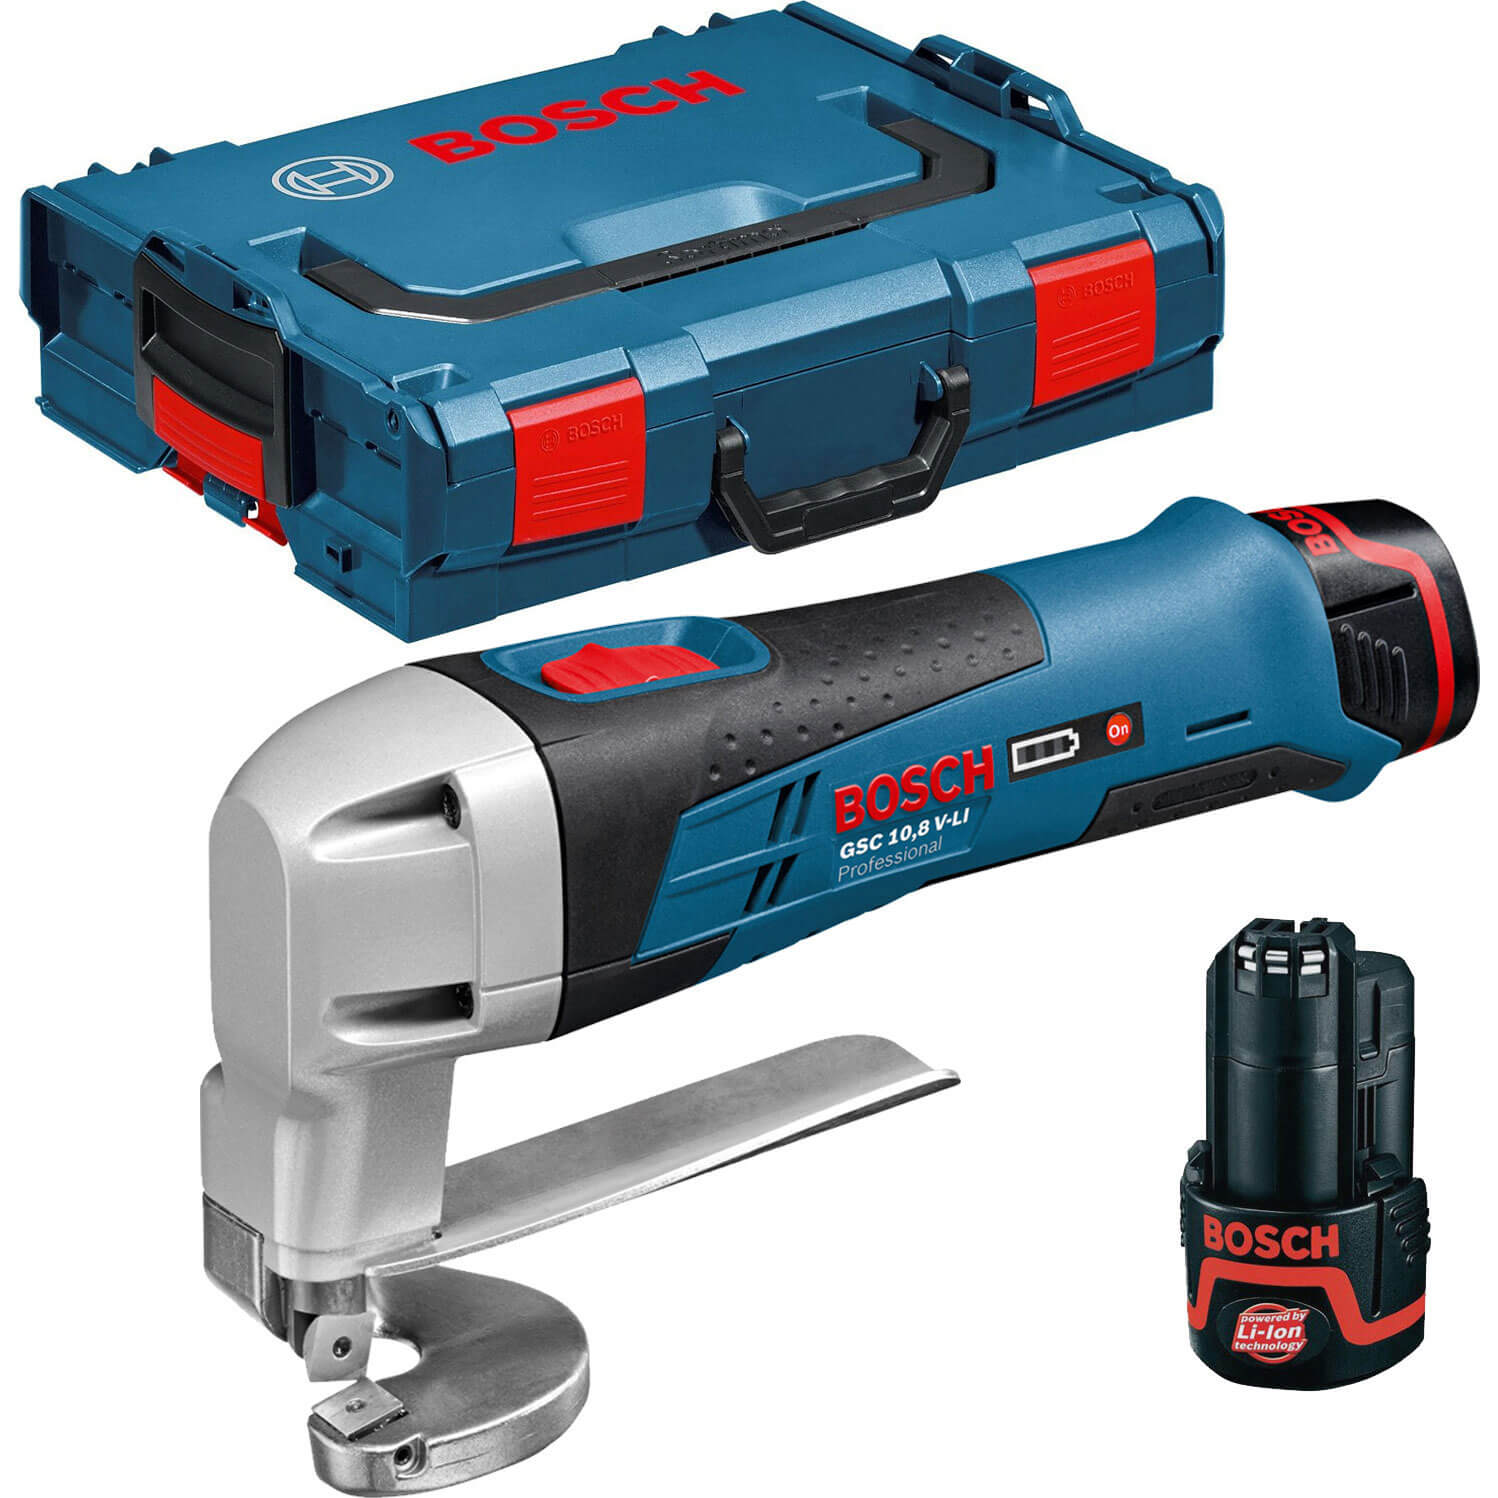 Bosch GSC 10.8 V-LI 10.8v Cordless Metal Shears with L Boxx & 2 Lithium Ion Batteries 2ah